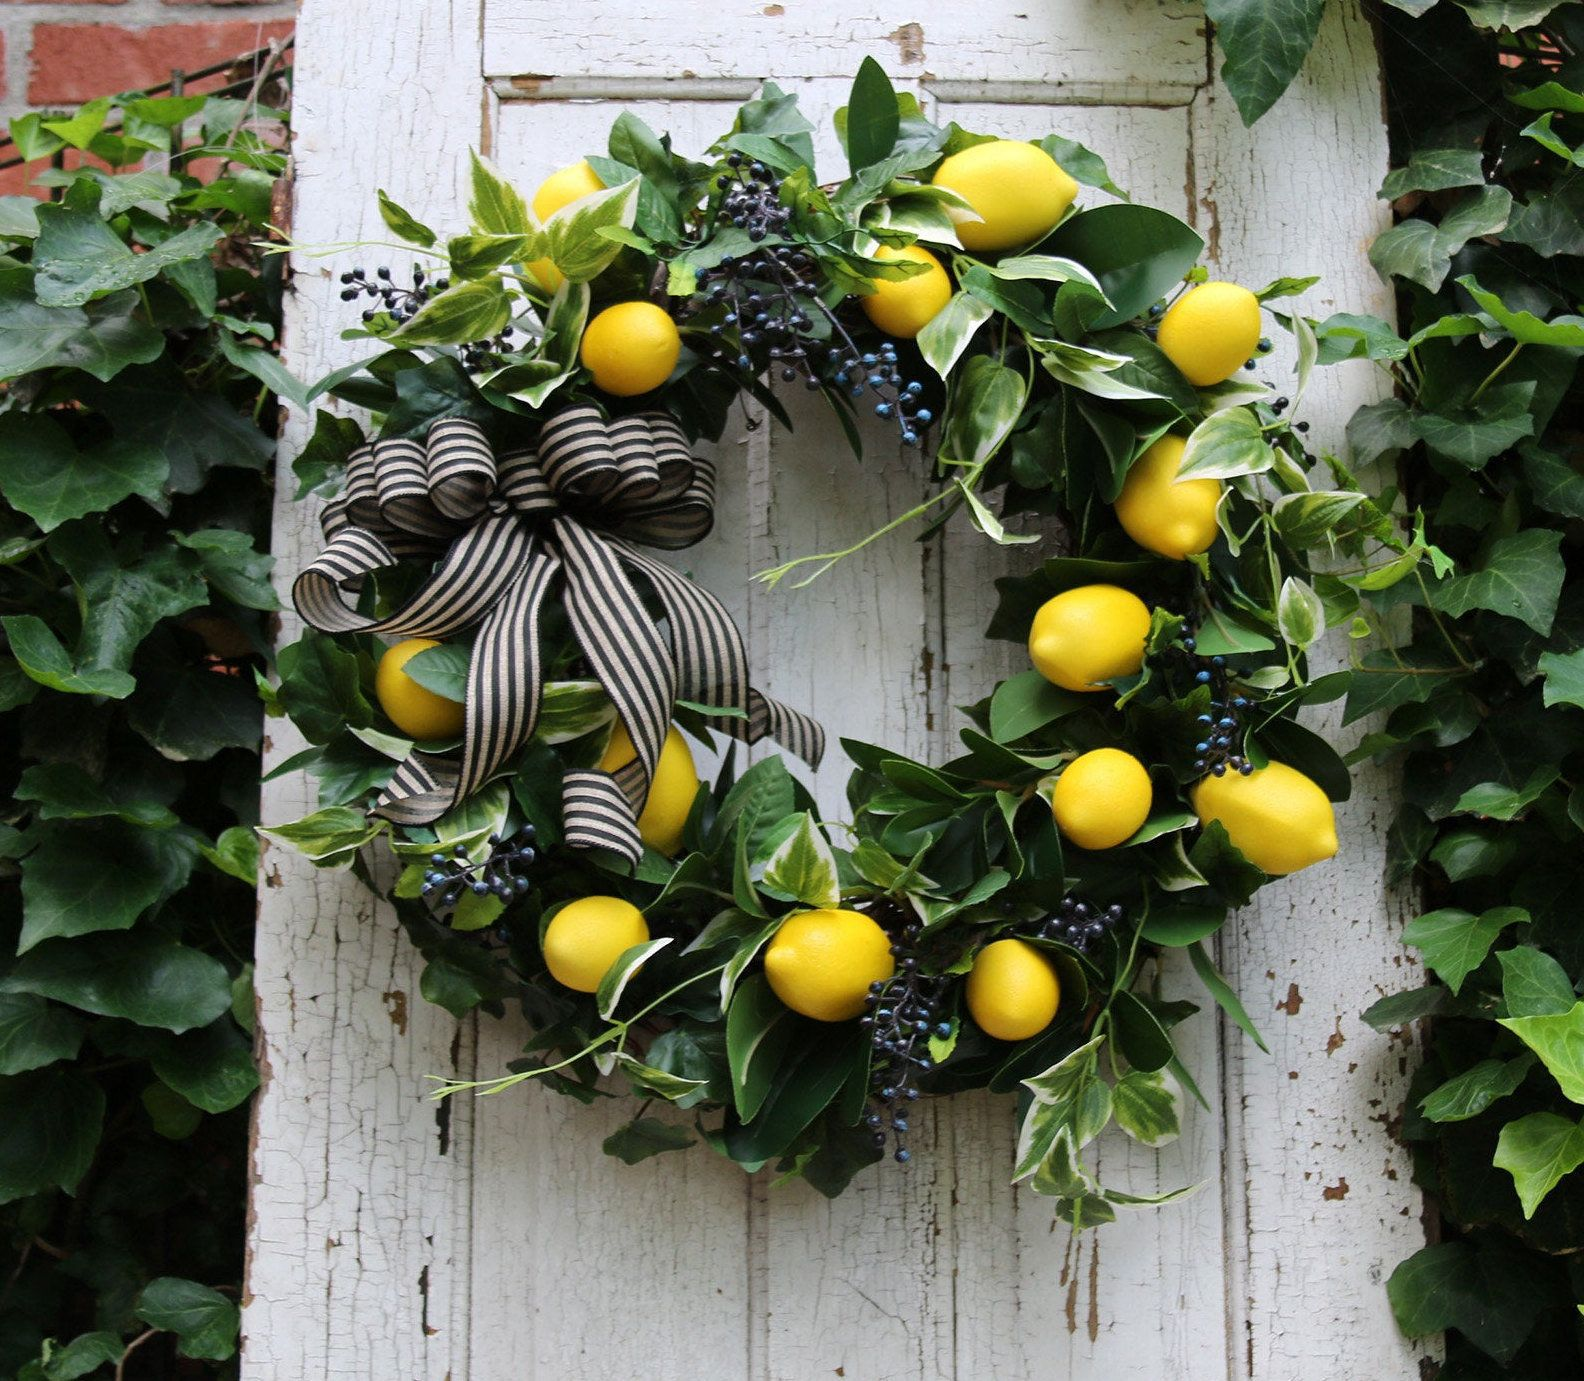 Lemon wreath for Front door, Farmhouse wreath, Lemon wreath, Year Round wreath, Rustic Farmhouse wre #doubledoorwreaths